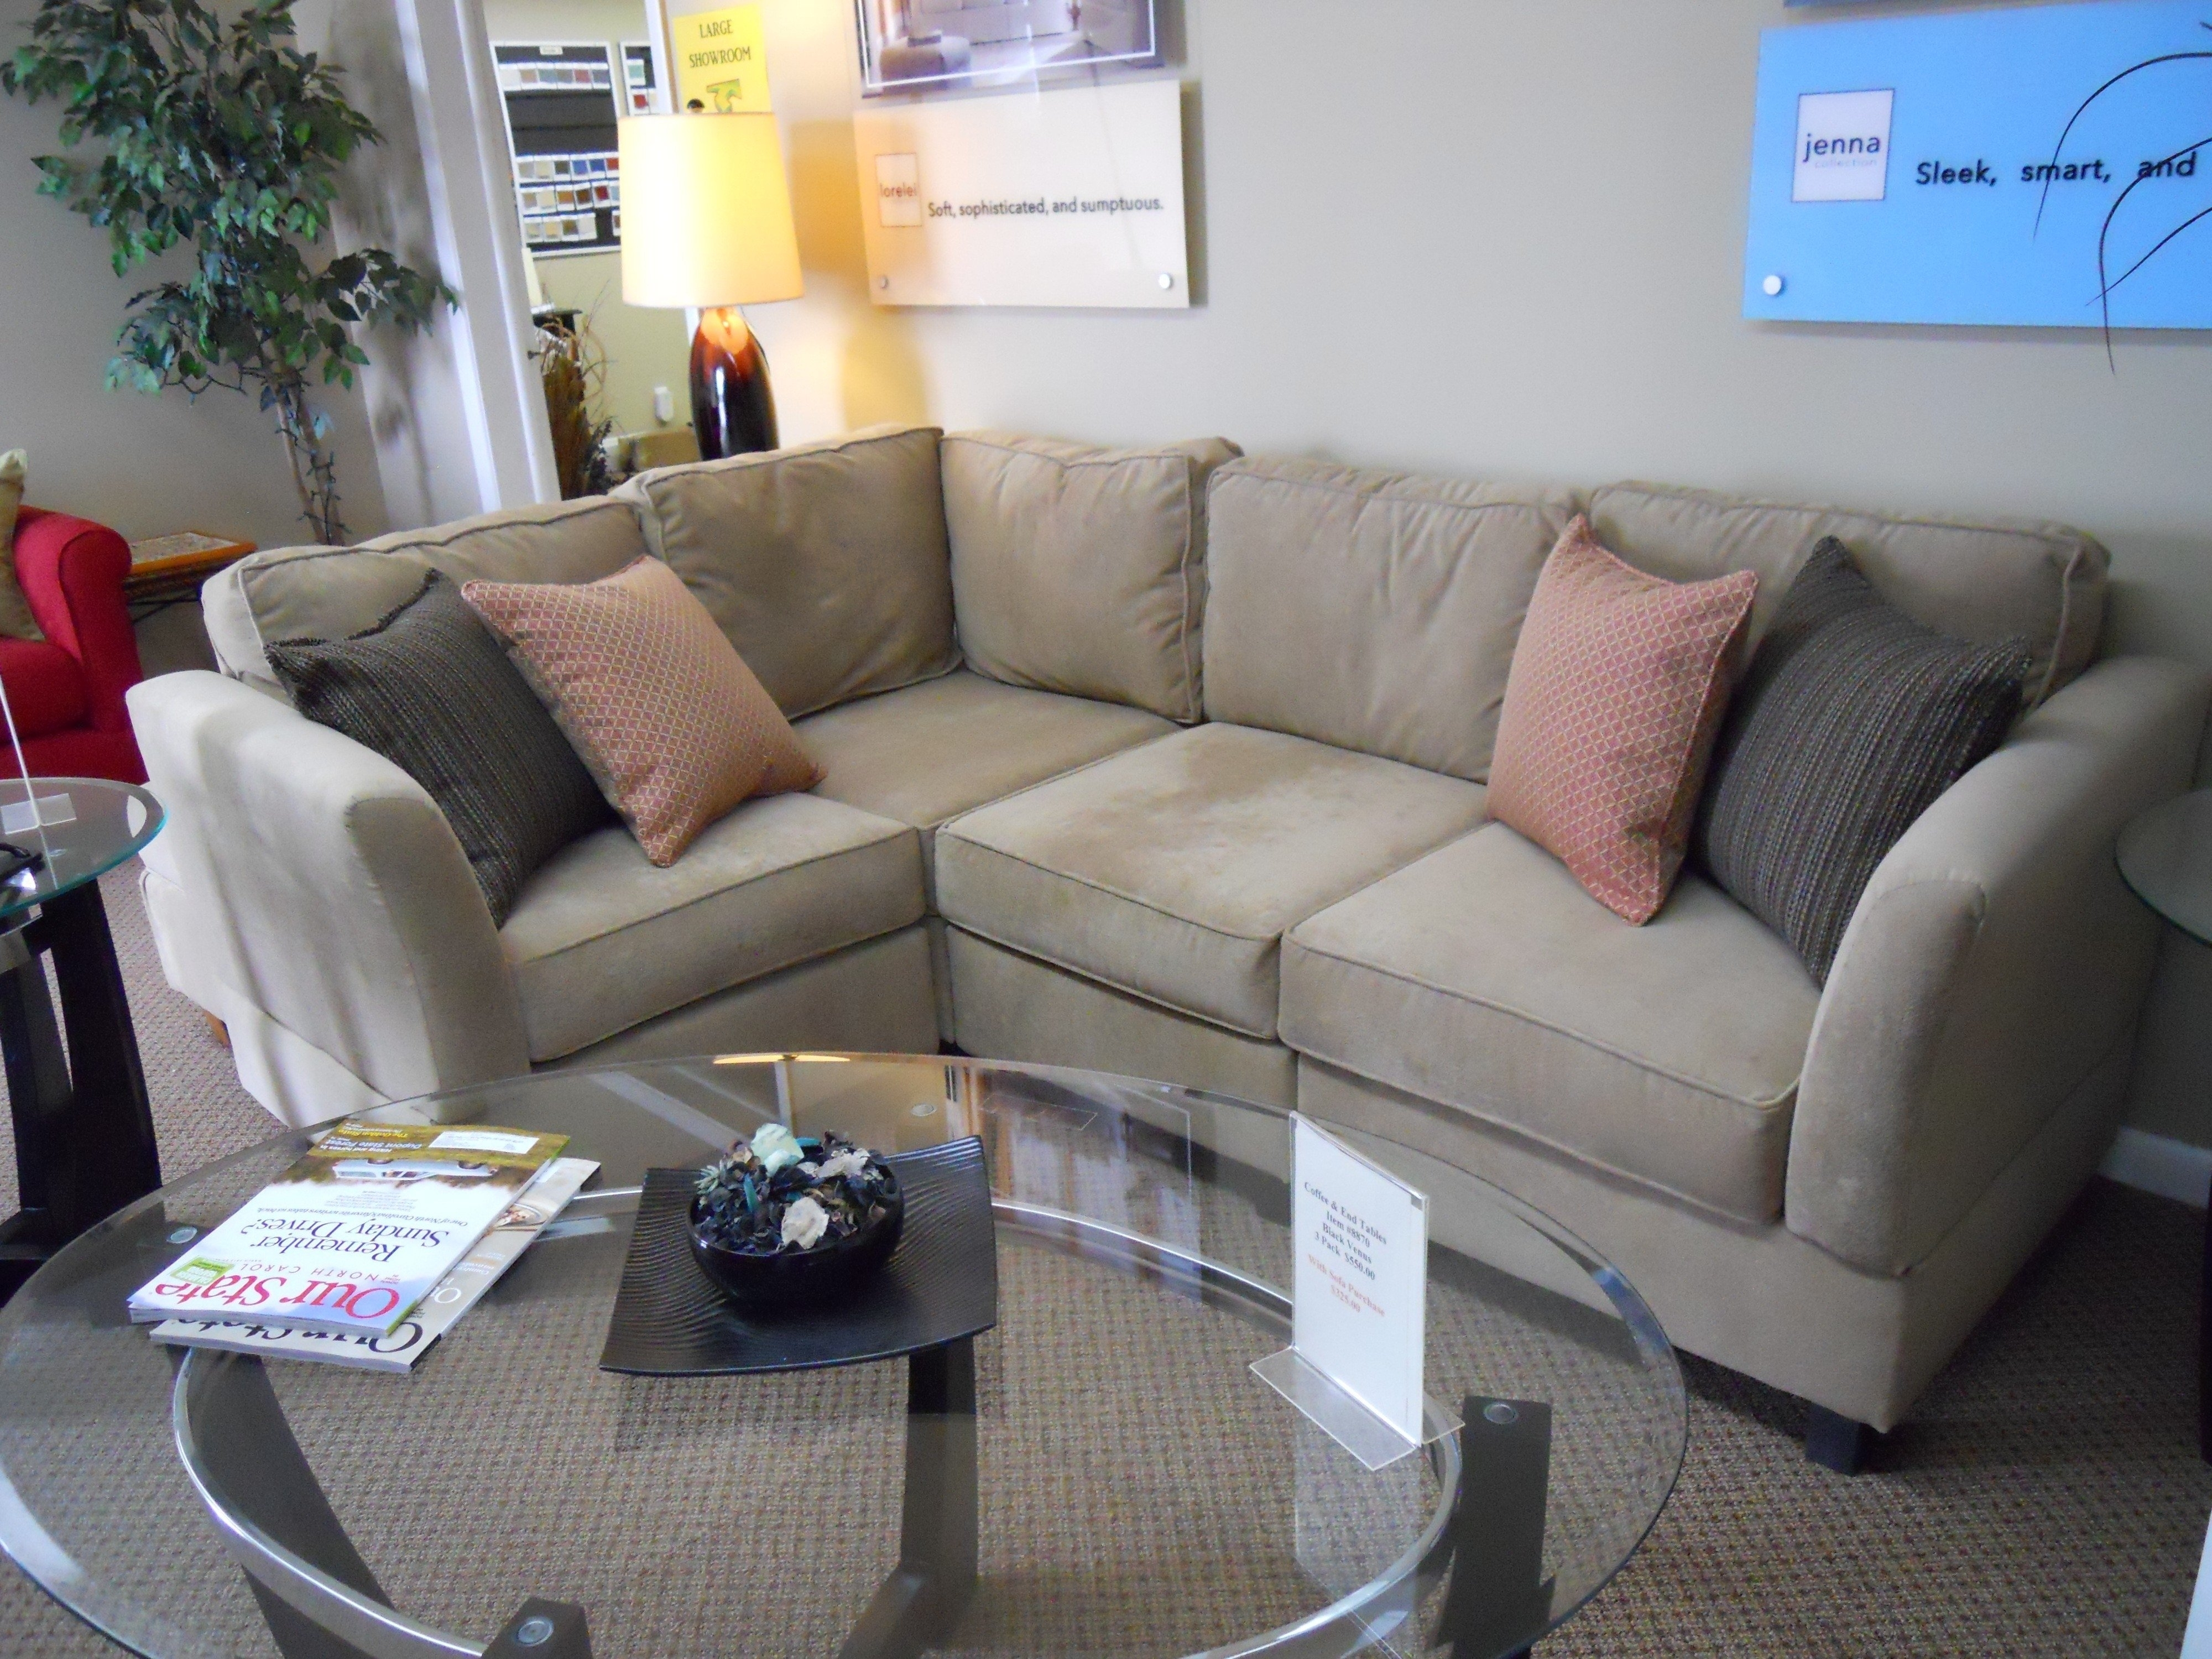 Reclining Sectional Sofas For Small Spaces W Script With Small Pertaining To Small Spaces Sectional Sofas (Image 6 of 10)